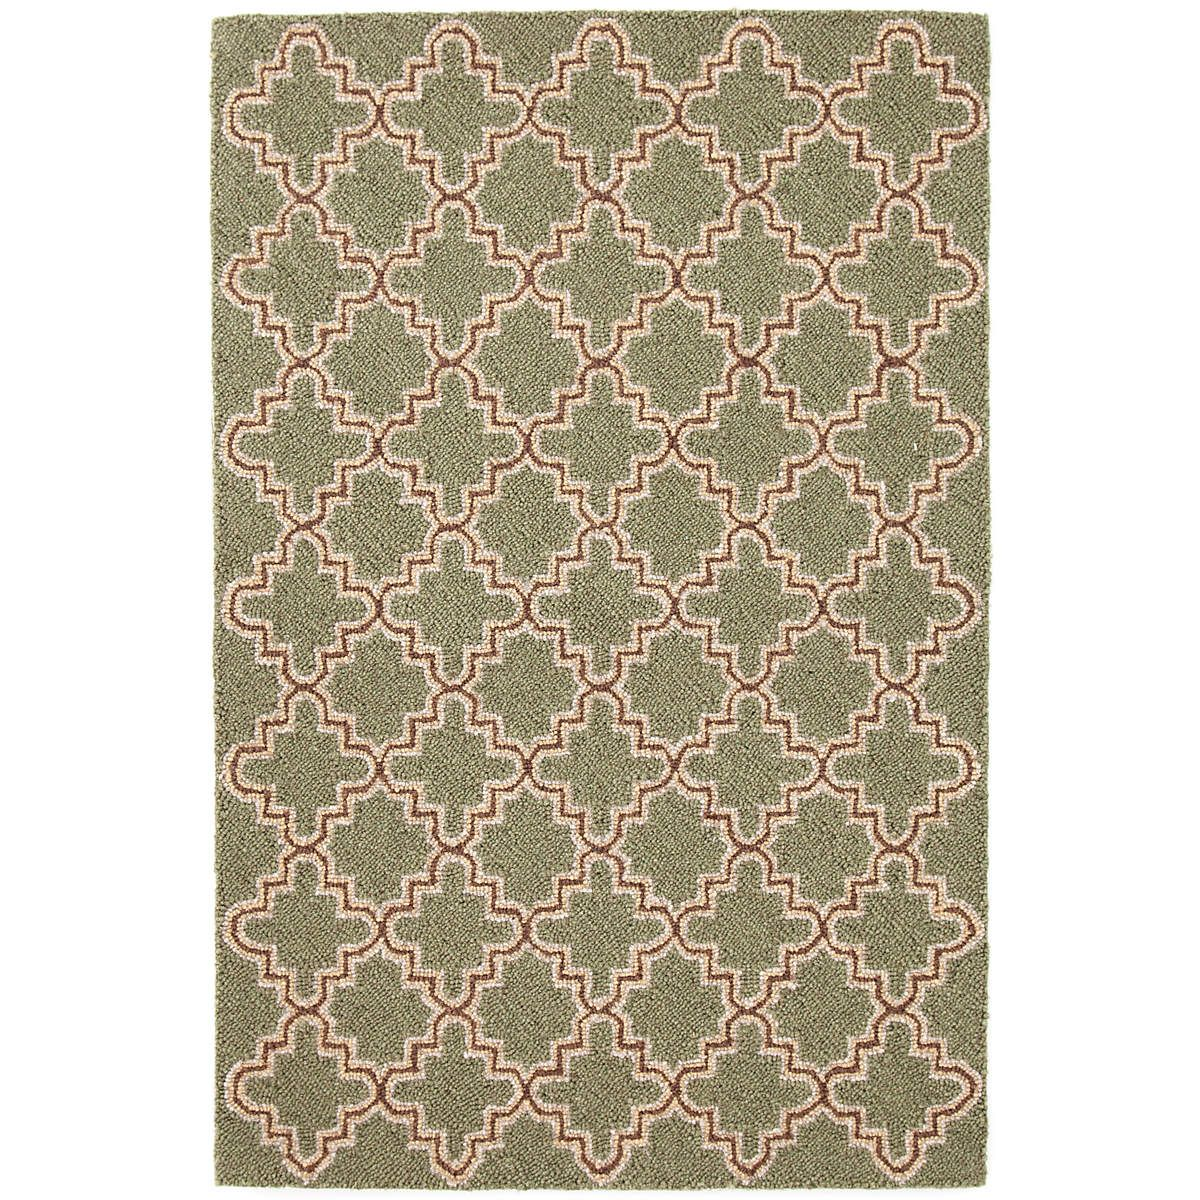 Go Green With Our Best Selling Vintage Style Wool Area Rug In An Old World Tile Inspired Pattern Rugs Area Rugs Wool Area Rugs